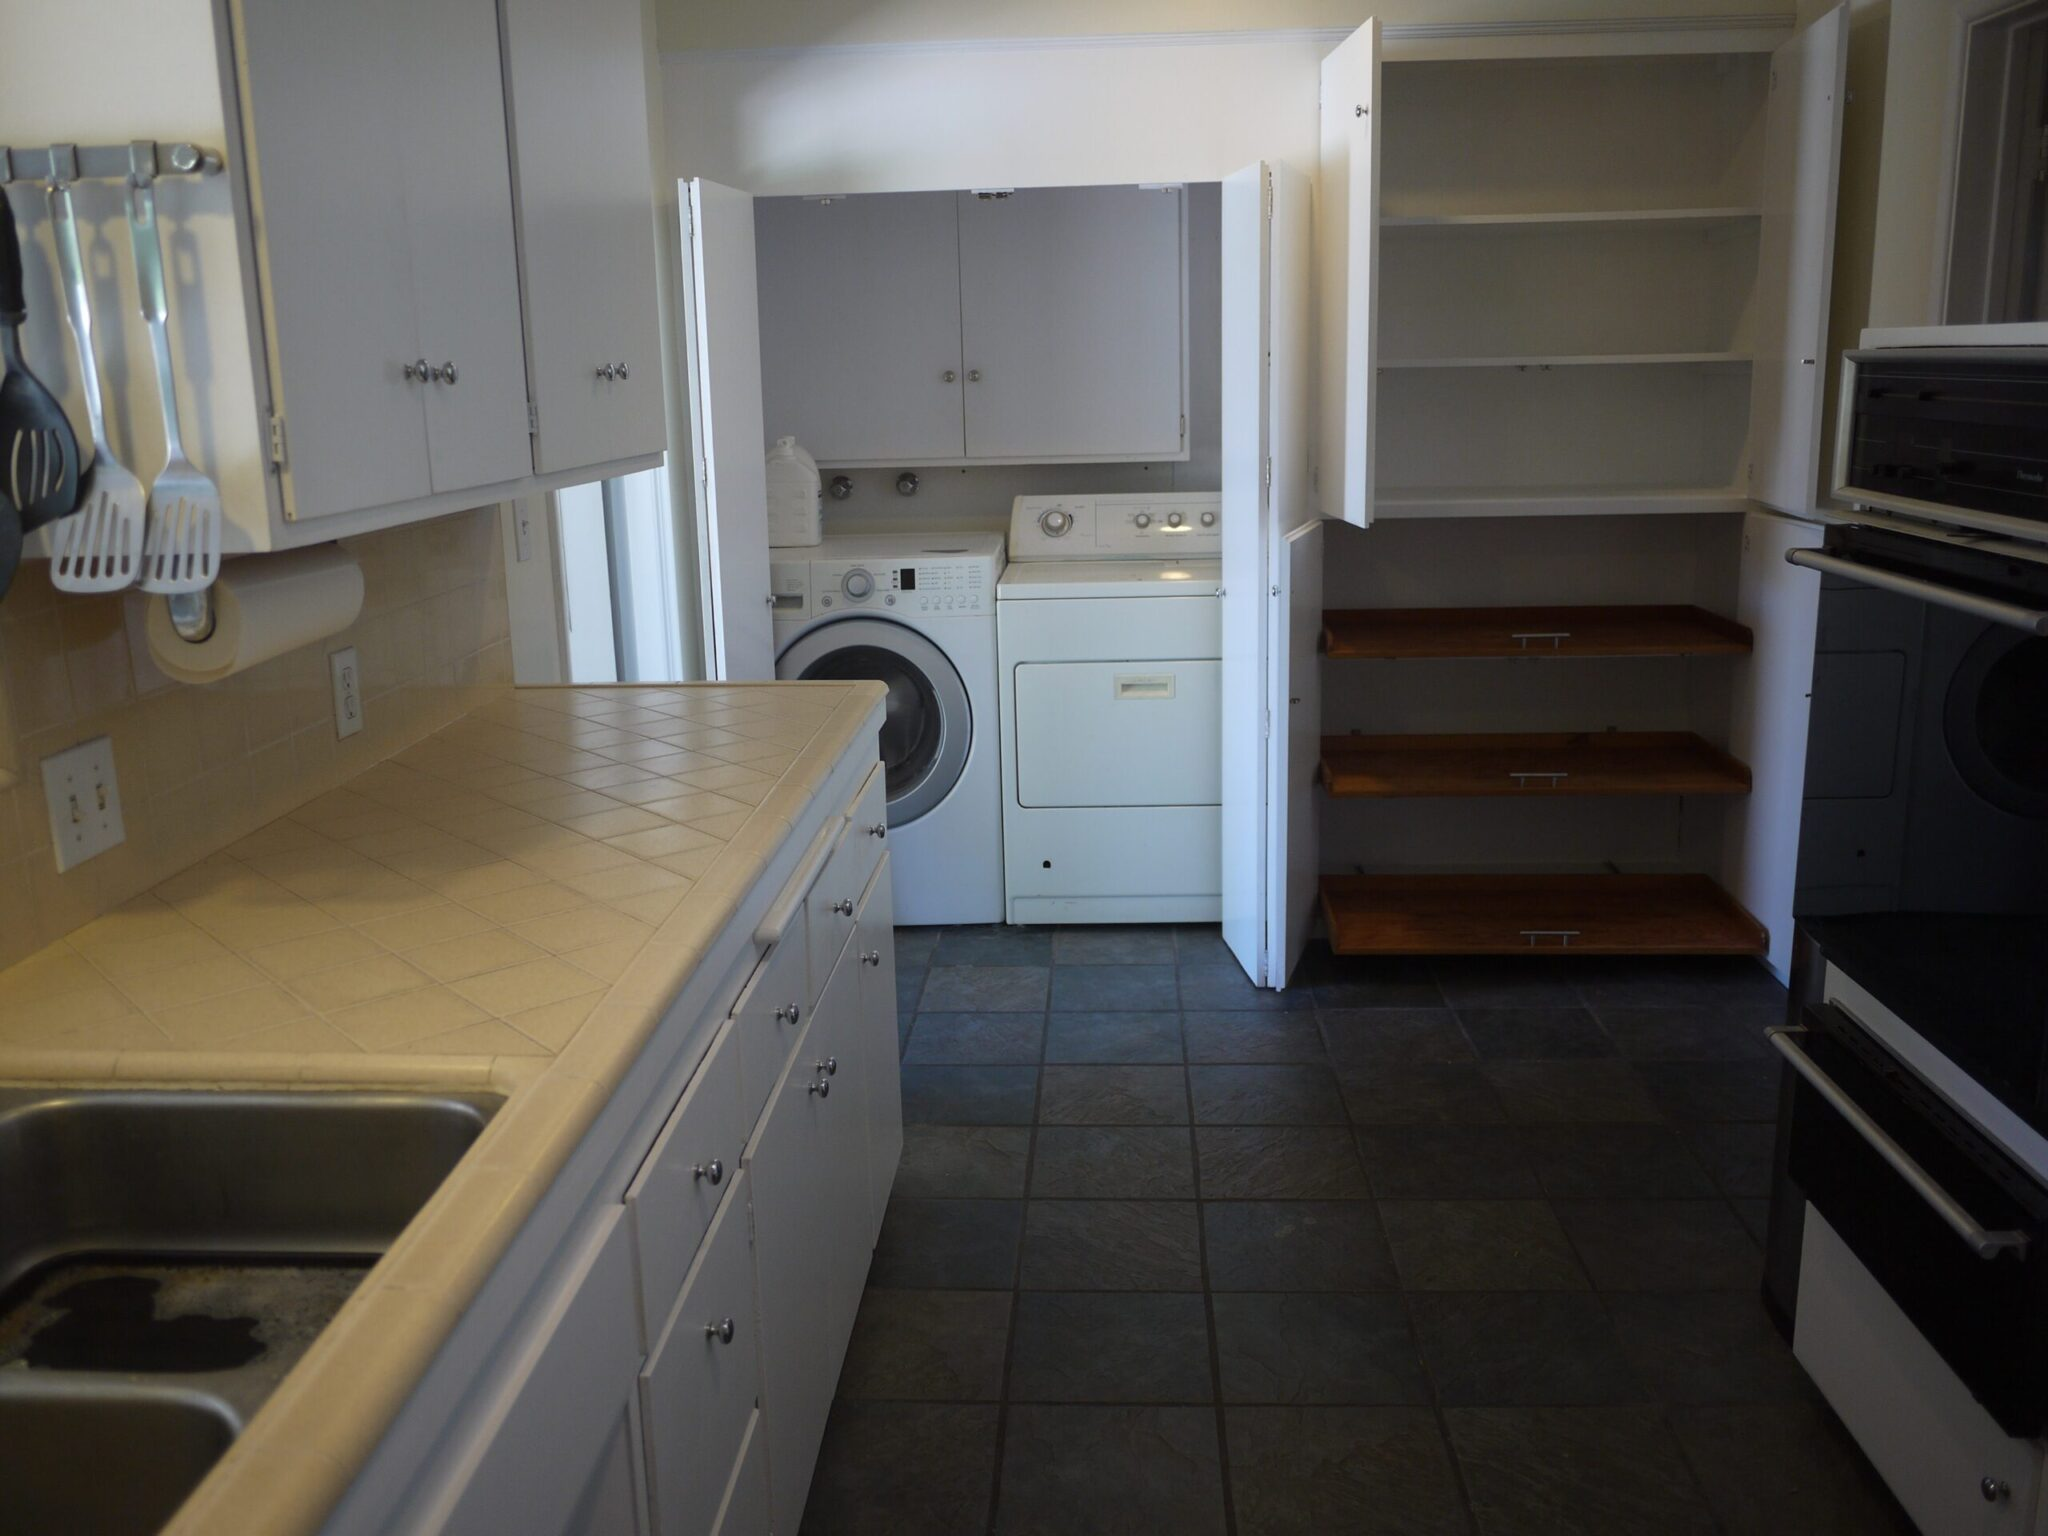 Kitchen and Washer / Dryer Area